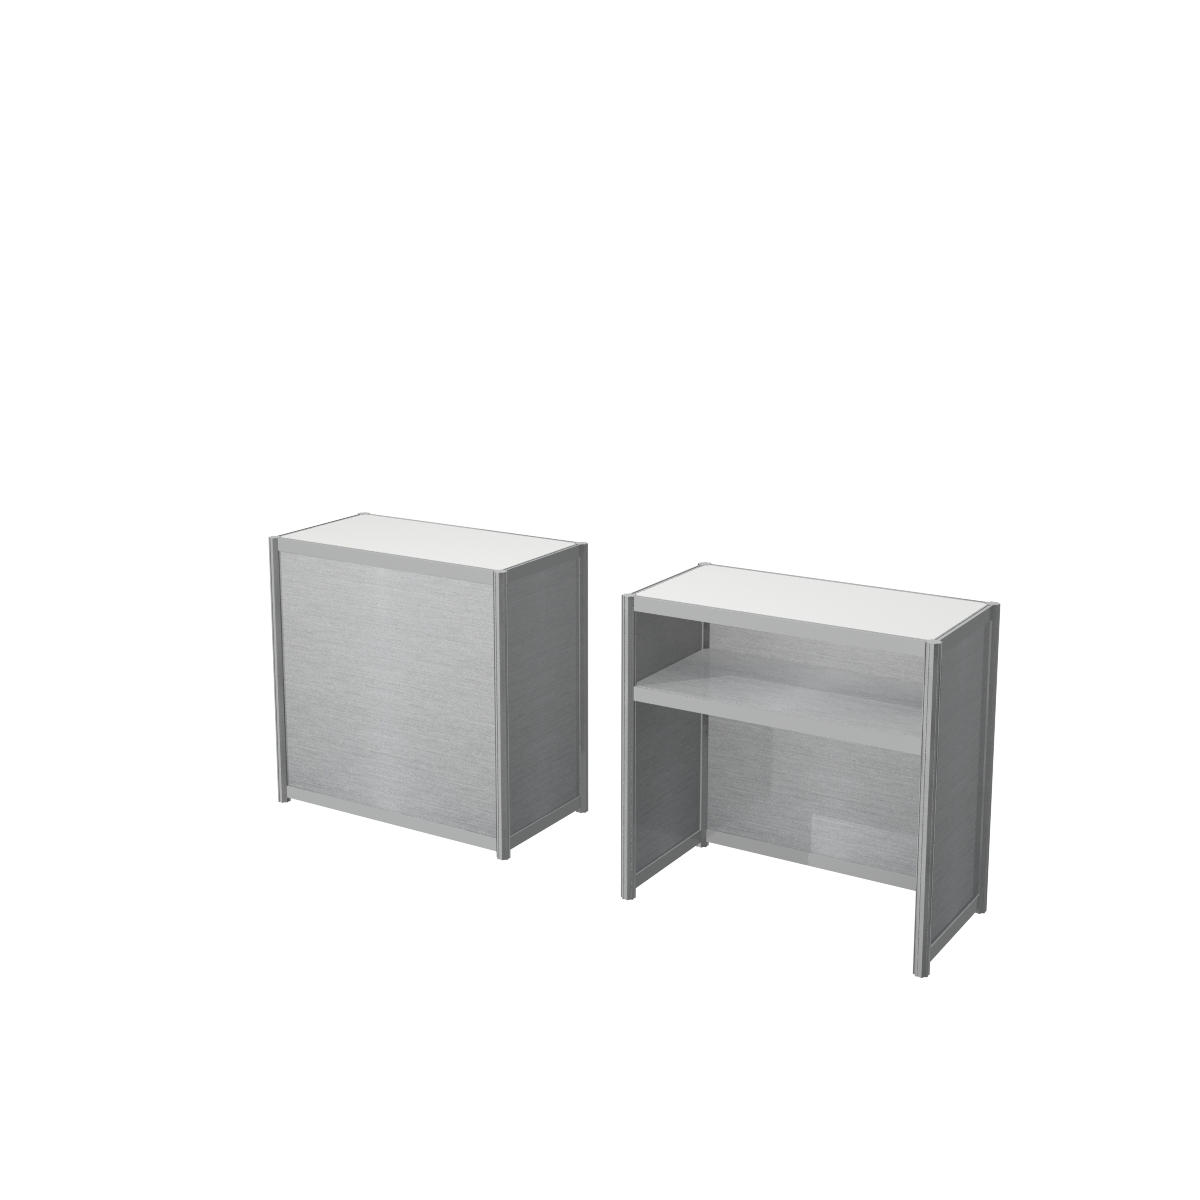 Aluminum frame counter with melamine infill and flush countertop - Brushed aluminum